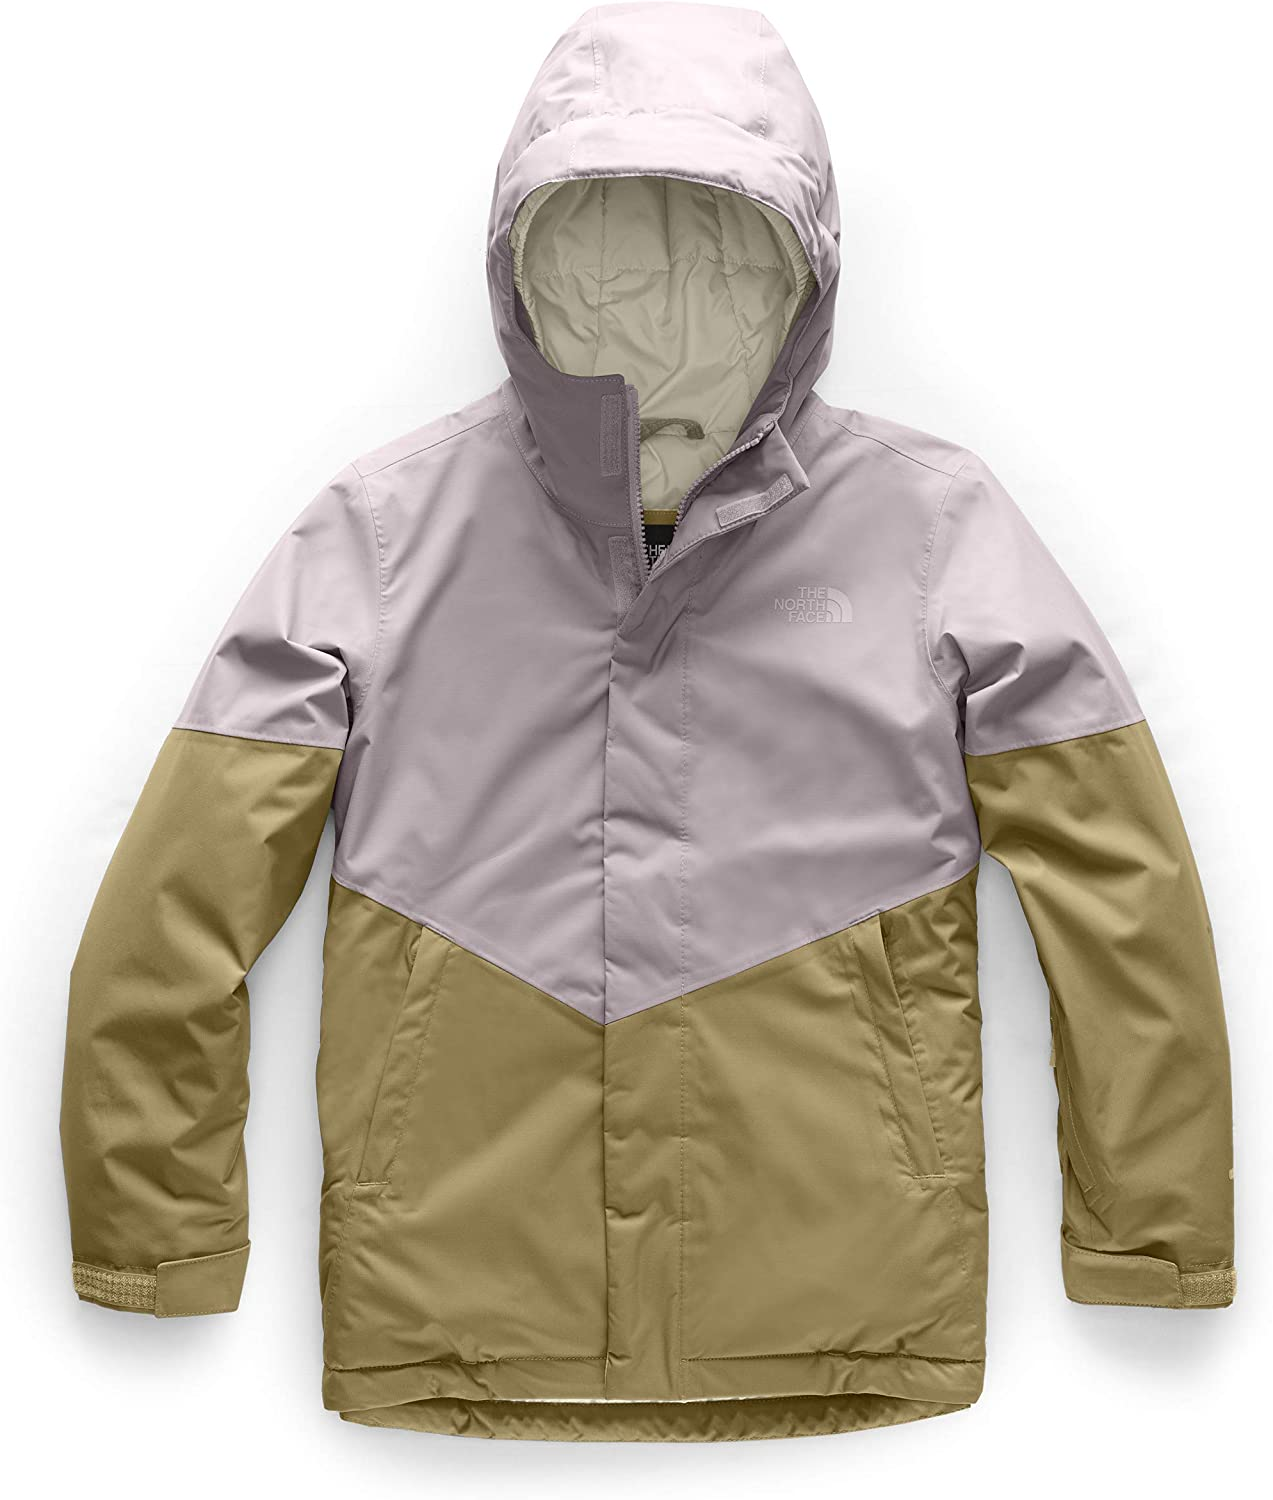 Little Kids//Big Kids The North Face Kids Girls Brianna Insulated Jacket